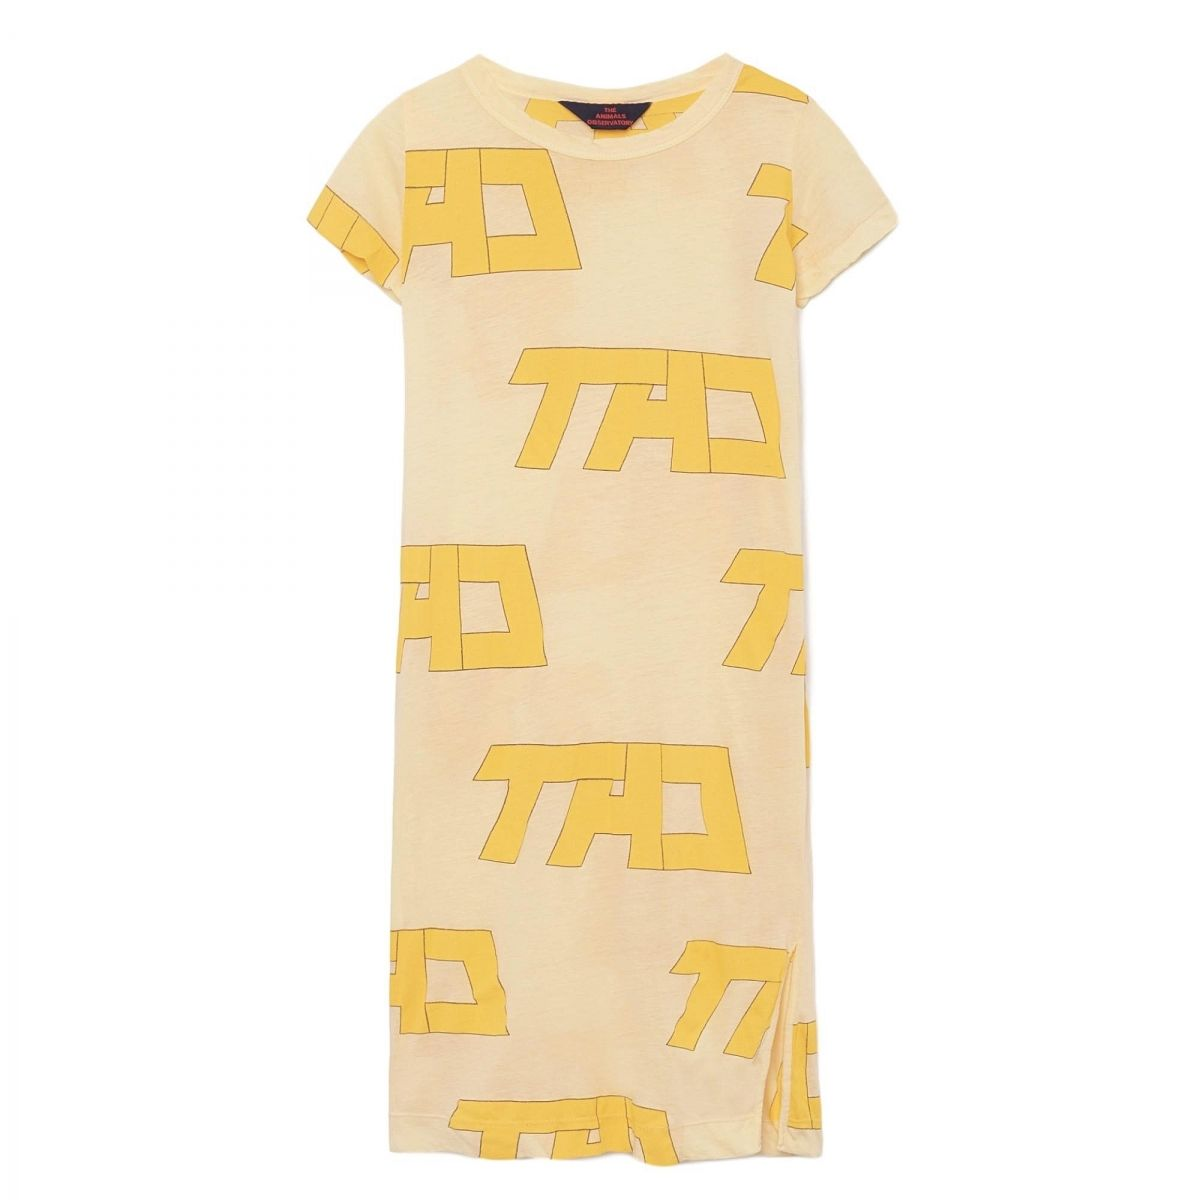 The Animals Observatory Gorilla Kids Dress yellow